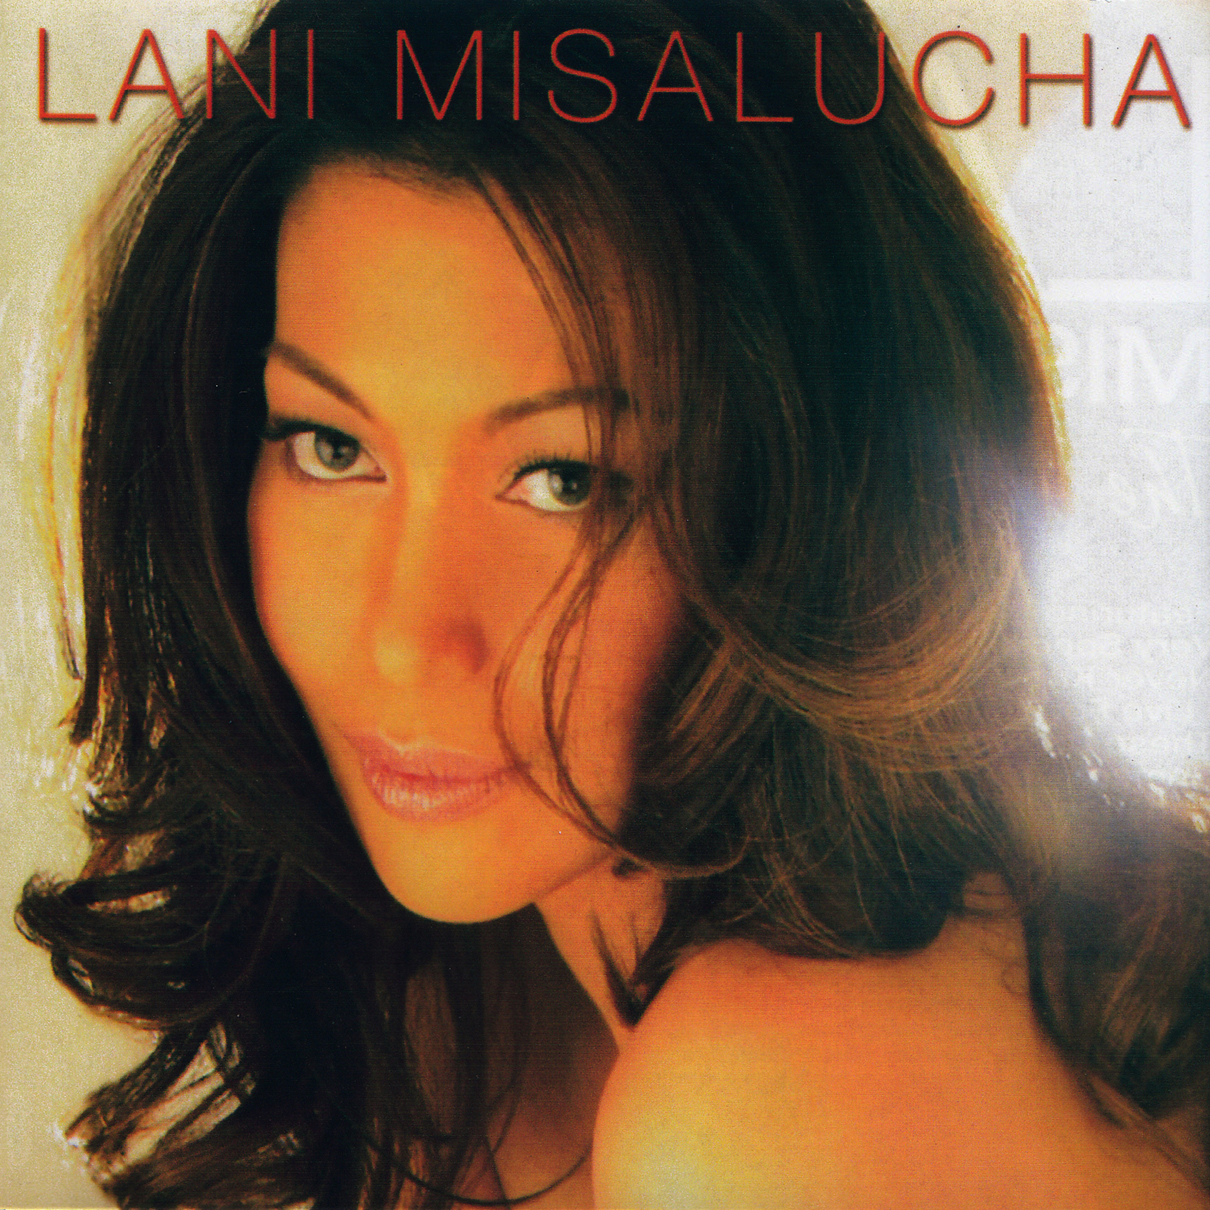 harga CD MUSIC LANI MISALUCHA THE PLATINUM EDITION Tokopedia.com